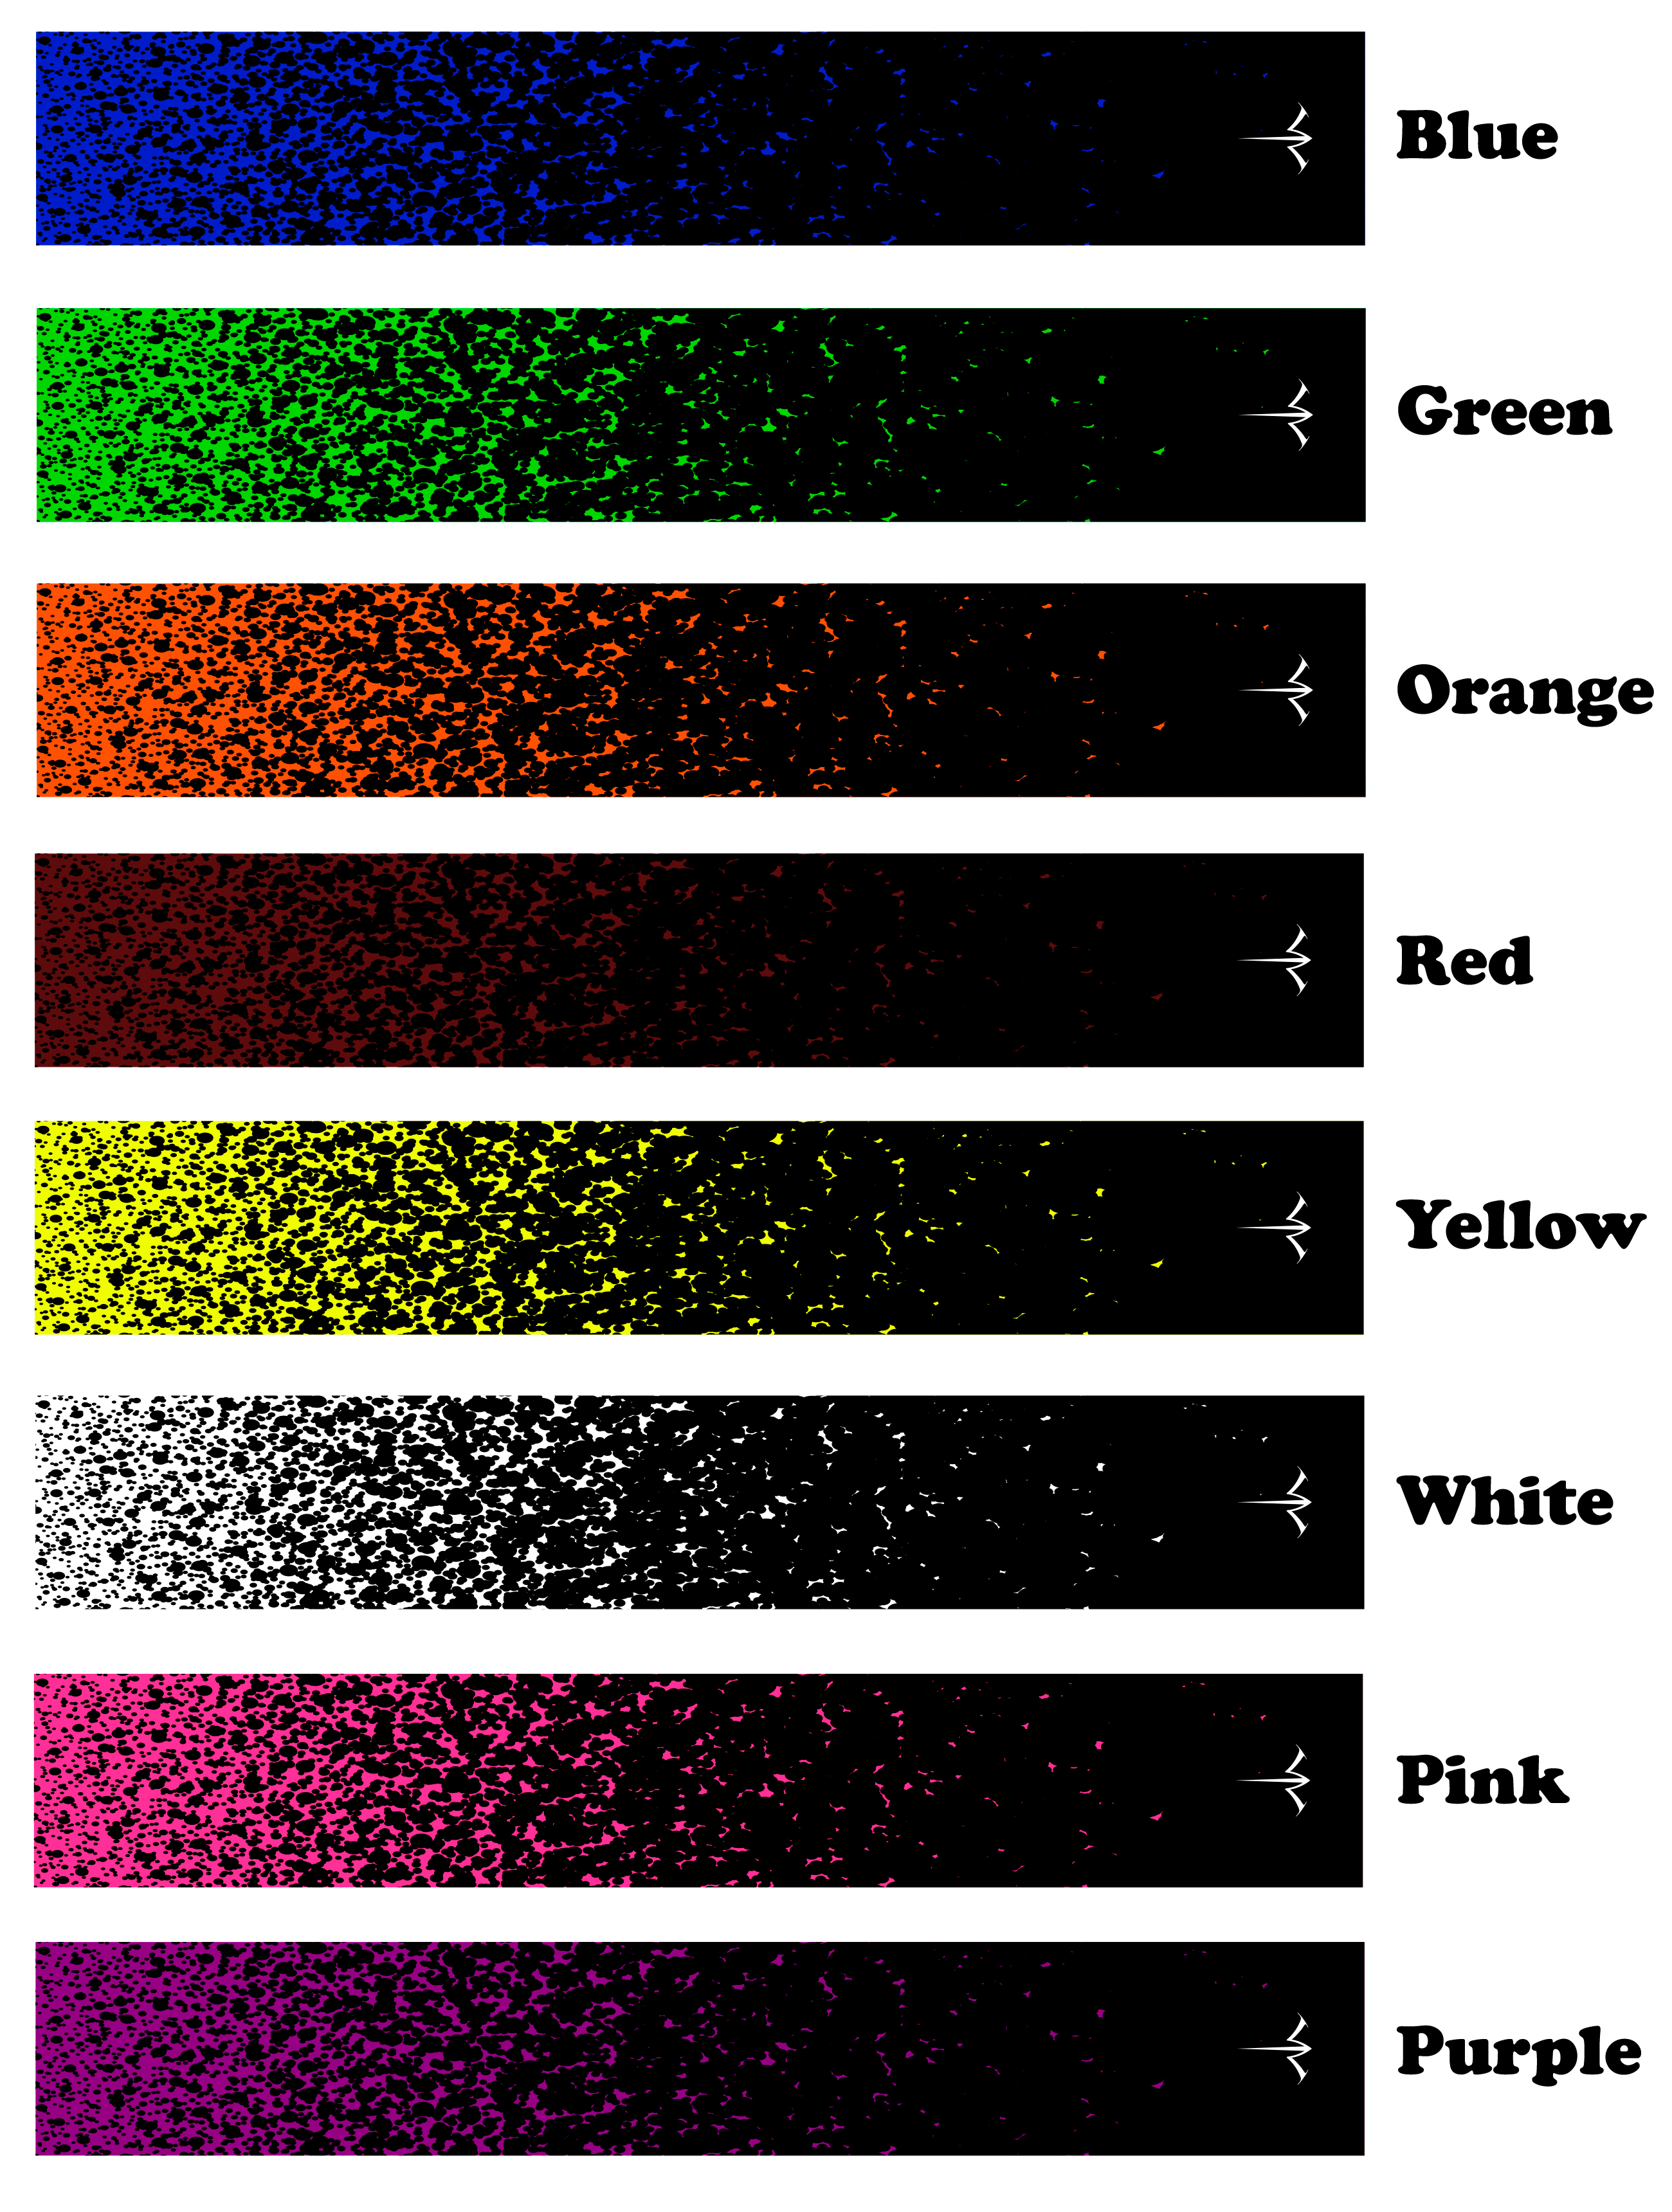 Details about  /White Water Archery Spray Paint Spatter Reflective Arrow Wraps 15 Pc Pack